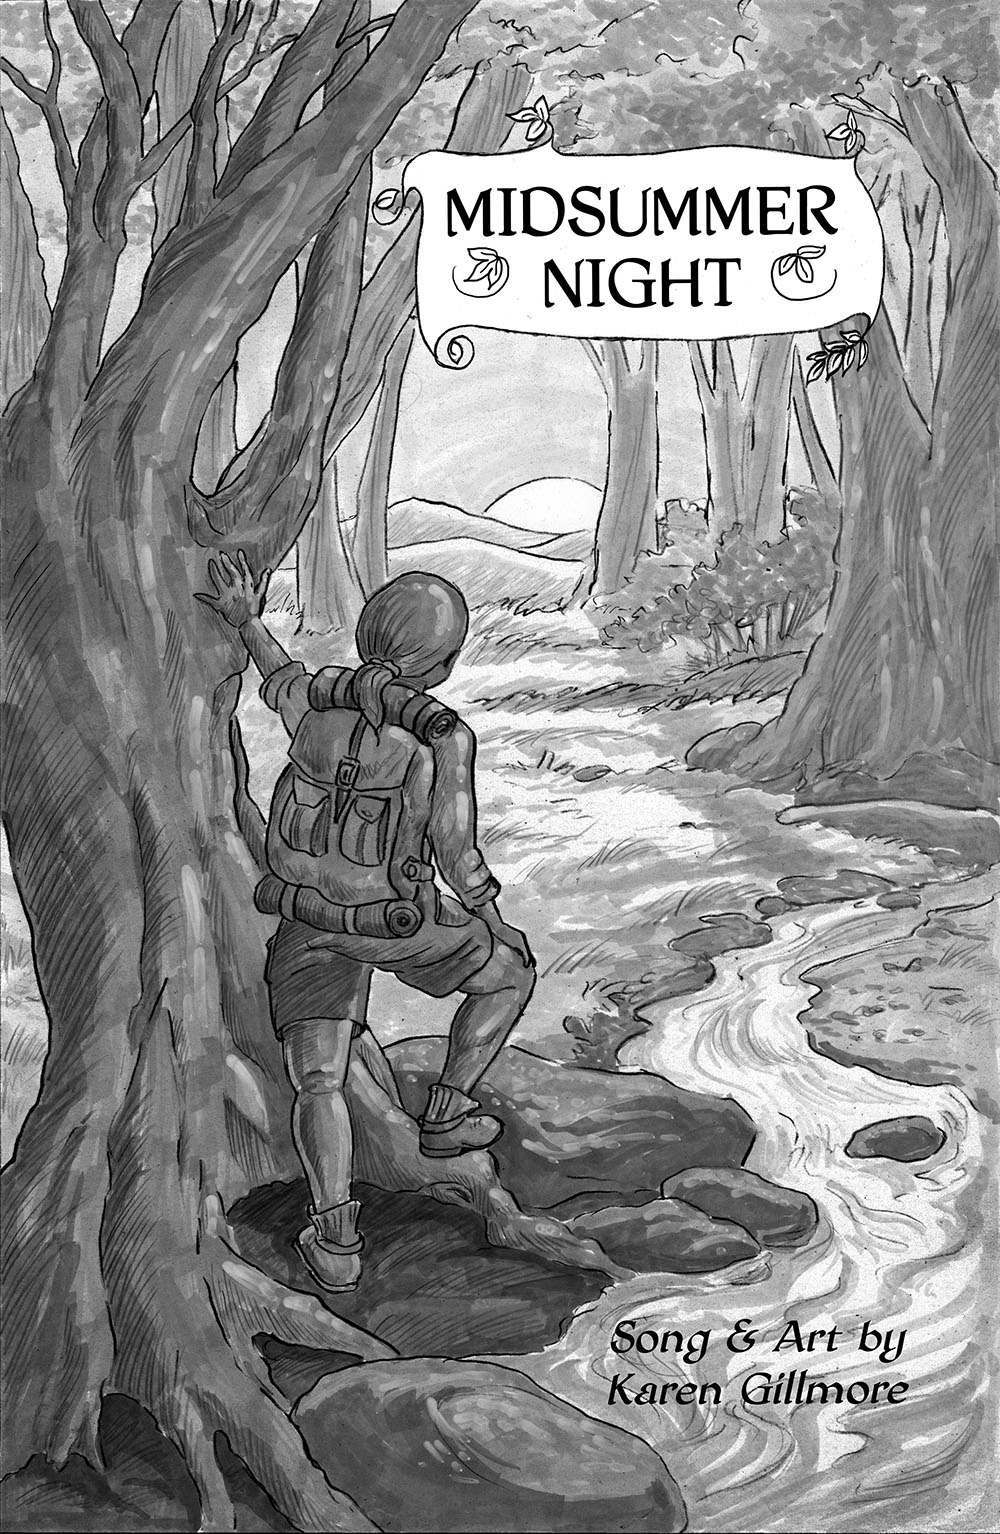 A Midsummer Night's Comic